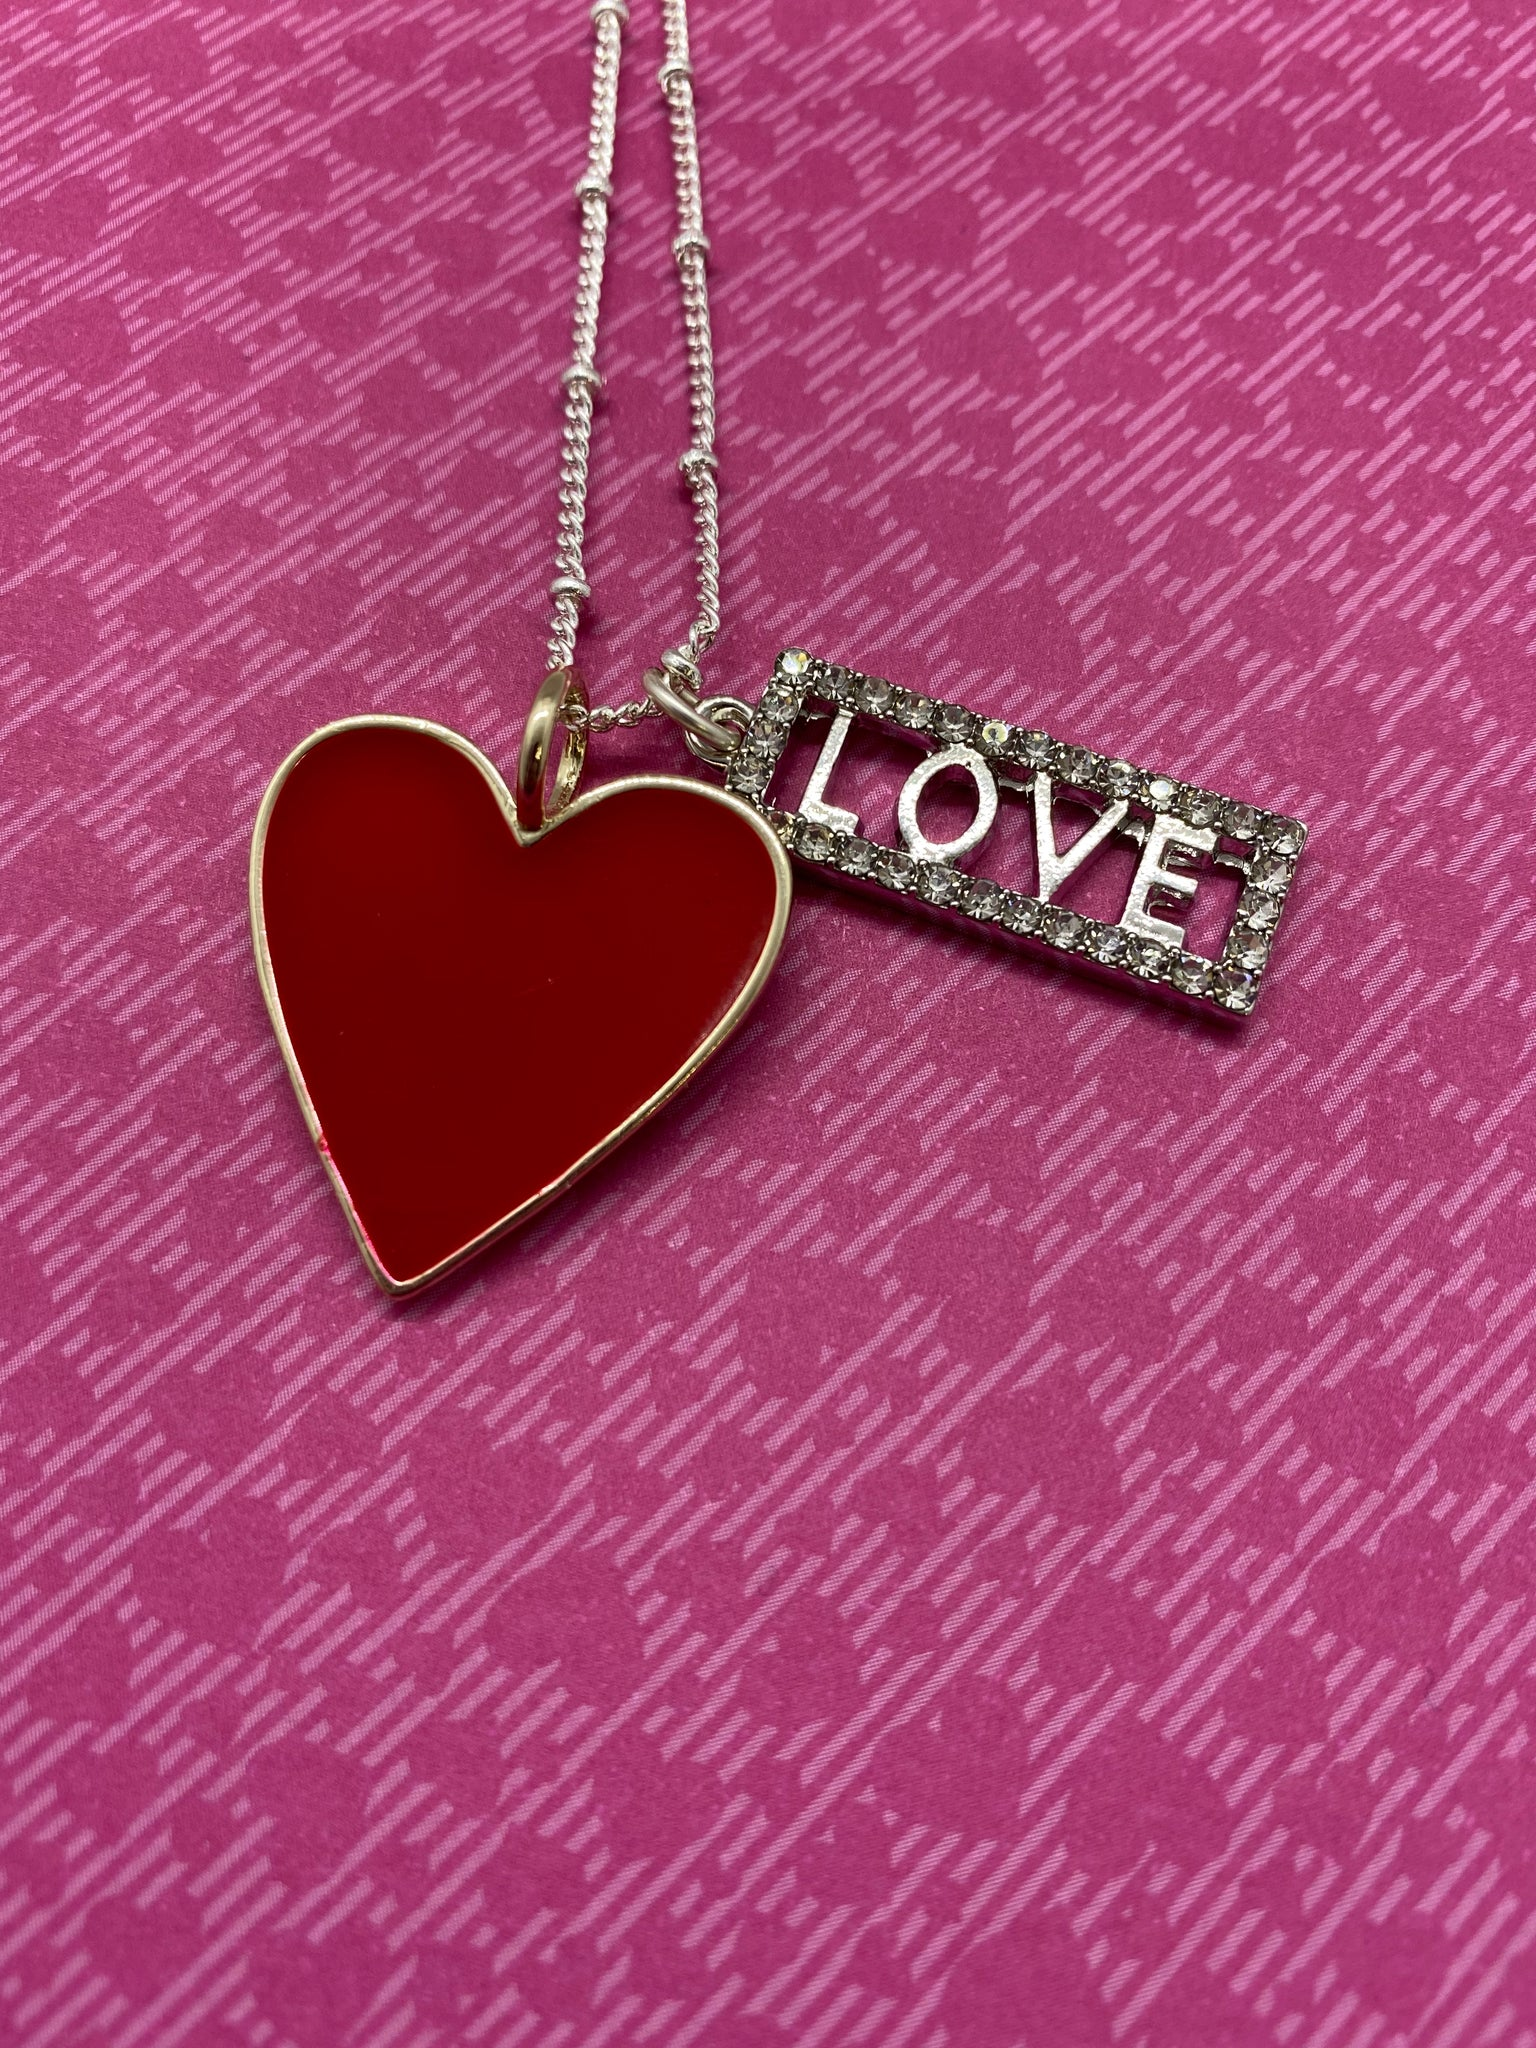 Red Enamel Heart Necklace with Rhinestone LOVE Charm